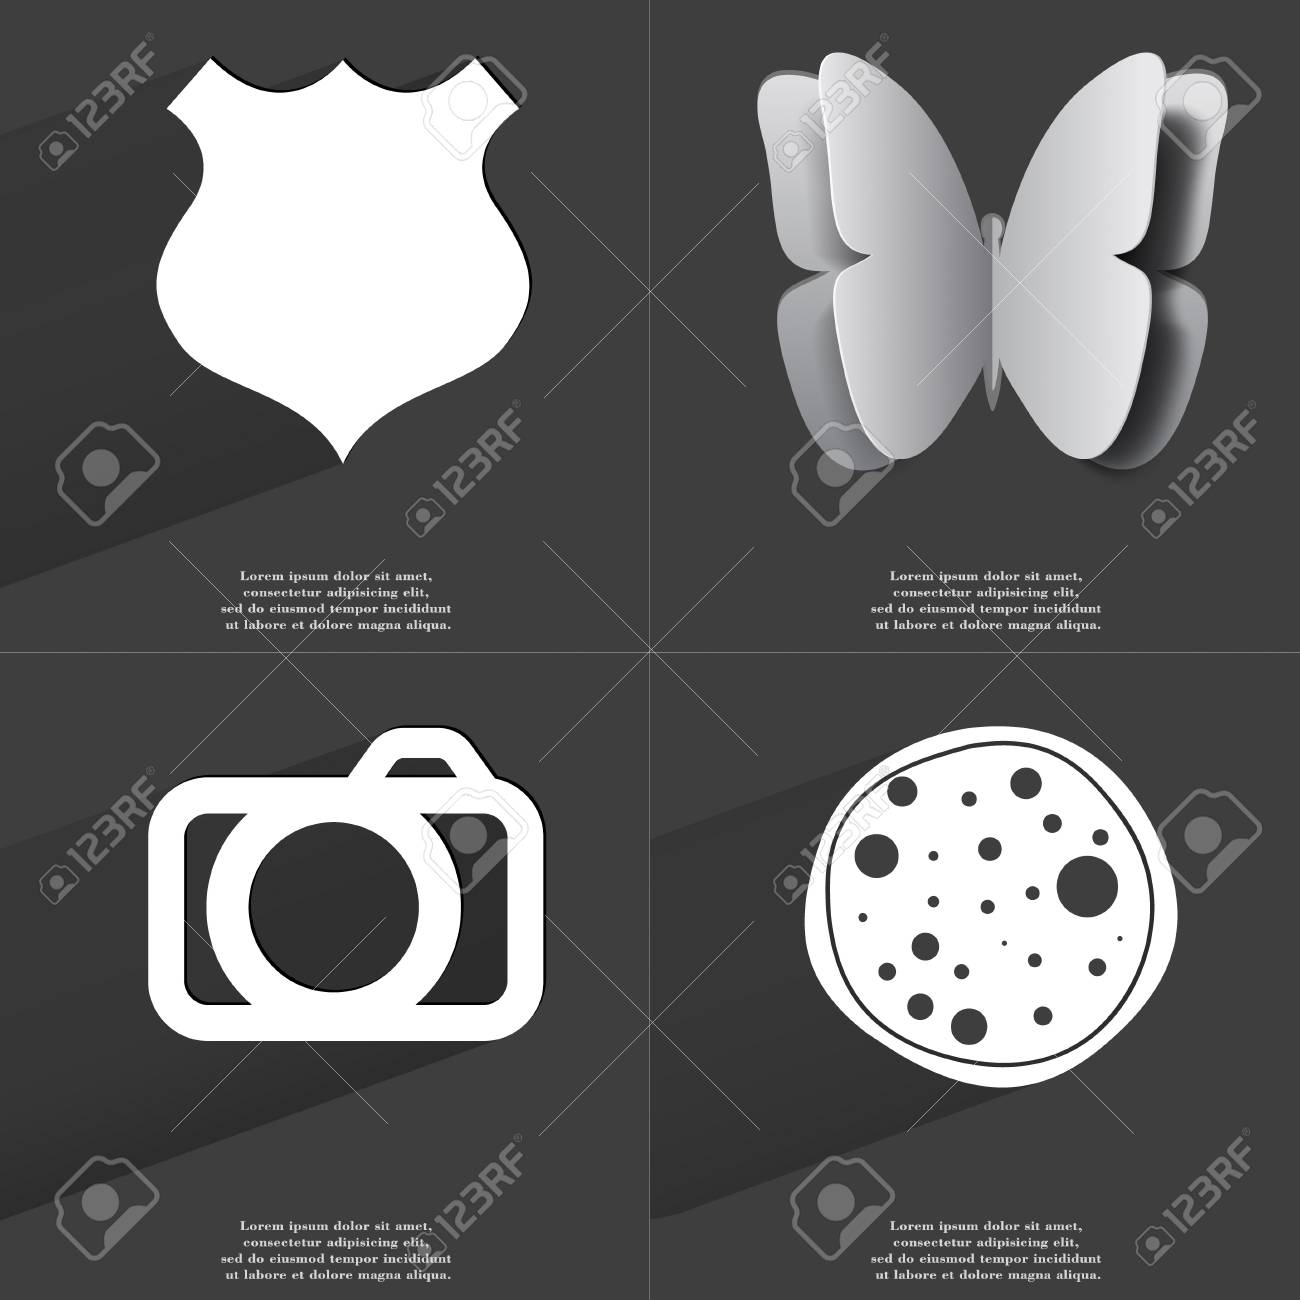 Police Badge Butterfly Camera Pizza Icon Sign Set Of Symbols